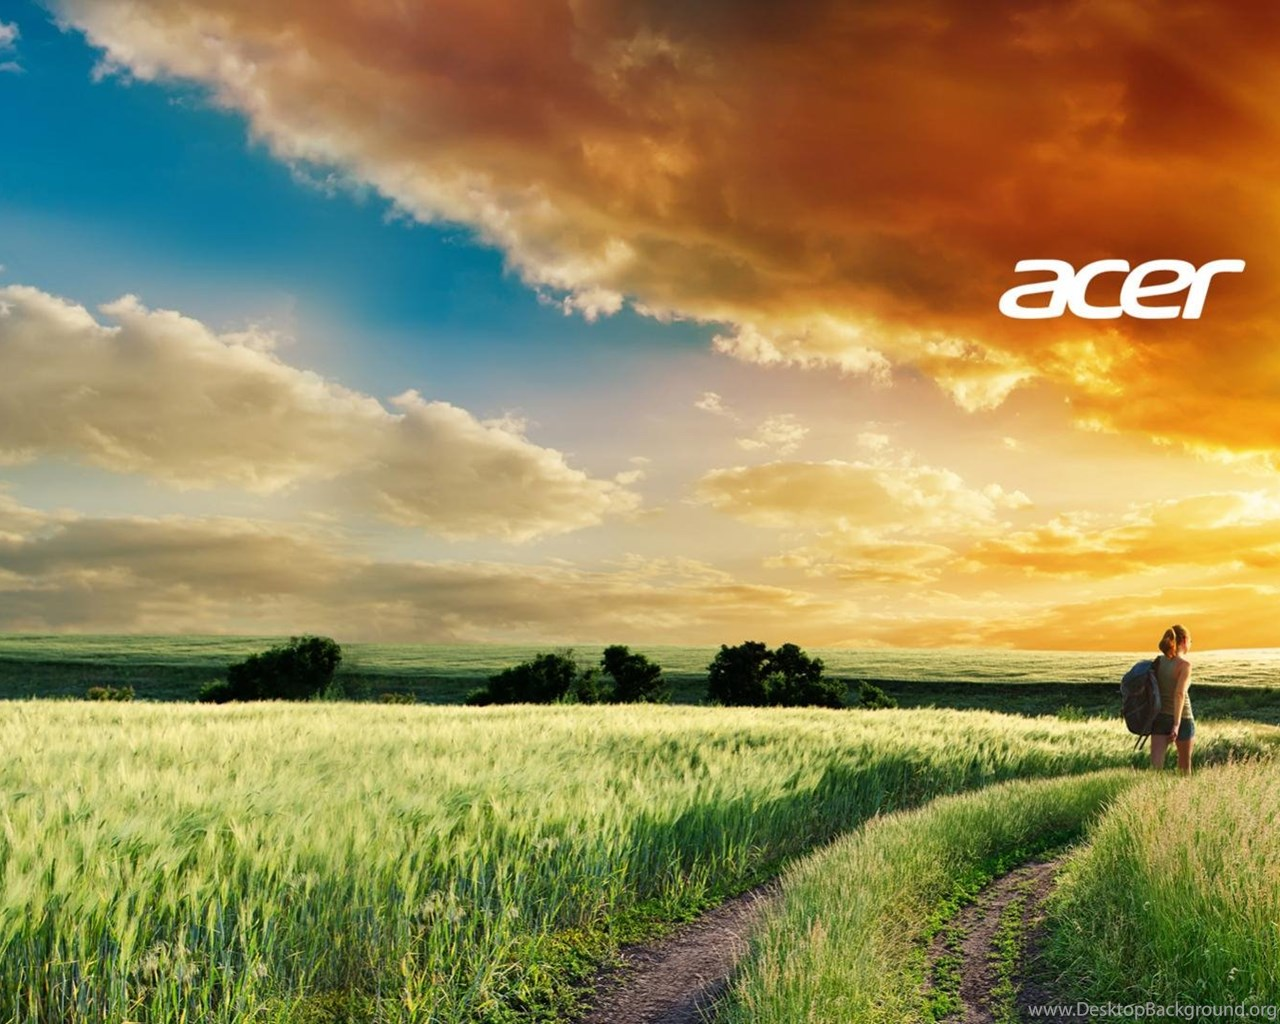 New Ipad Mini 1024 1024 Hd Wallpapers 100 Images Updated: New Acer Aspire V Nitro Series Desktop Background